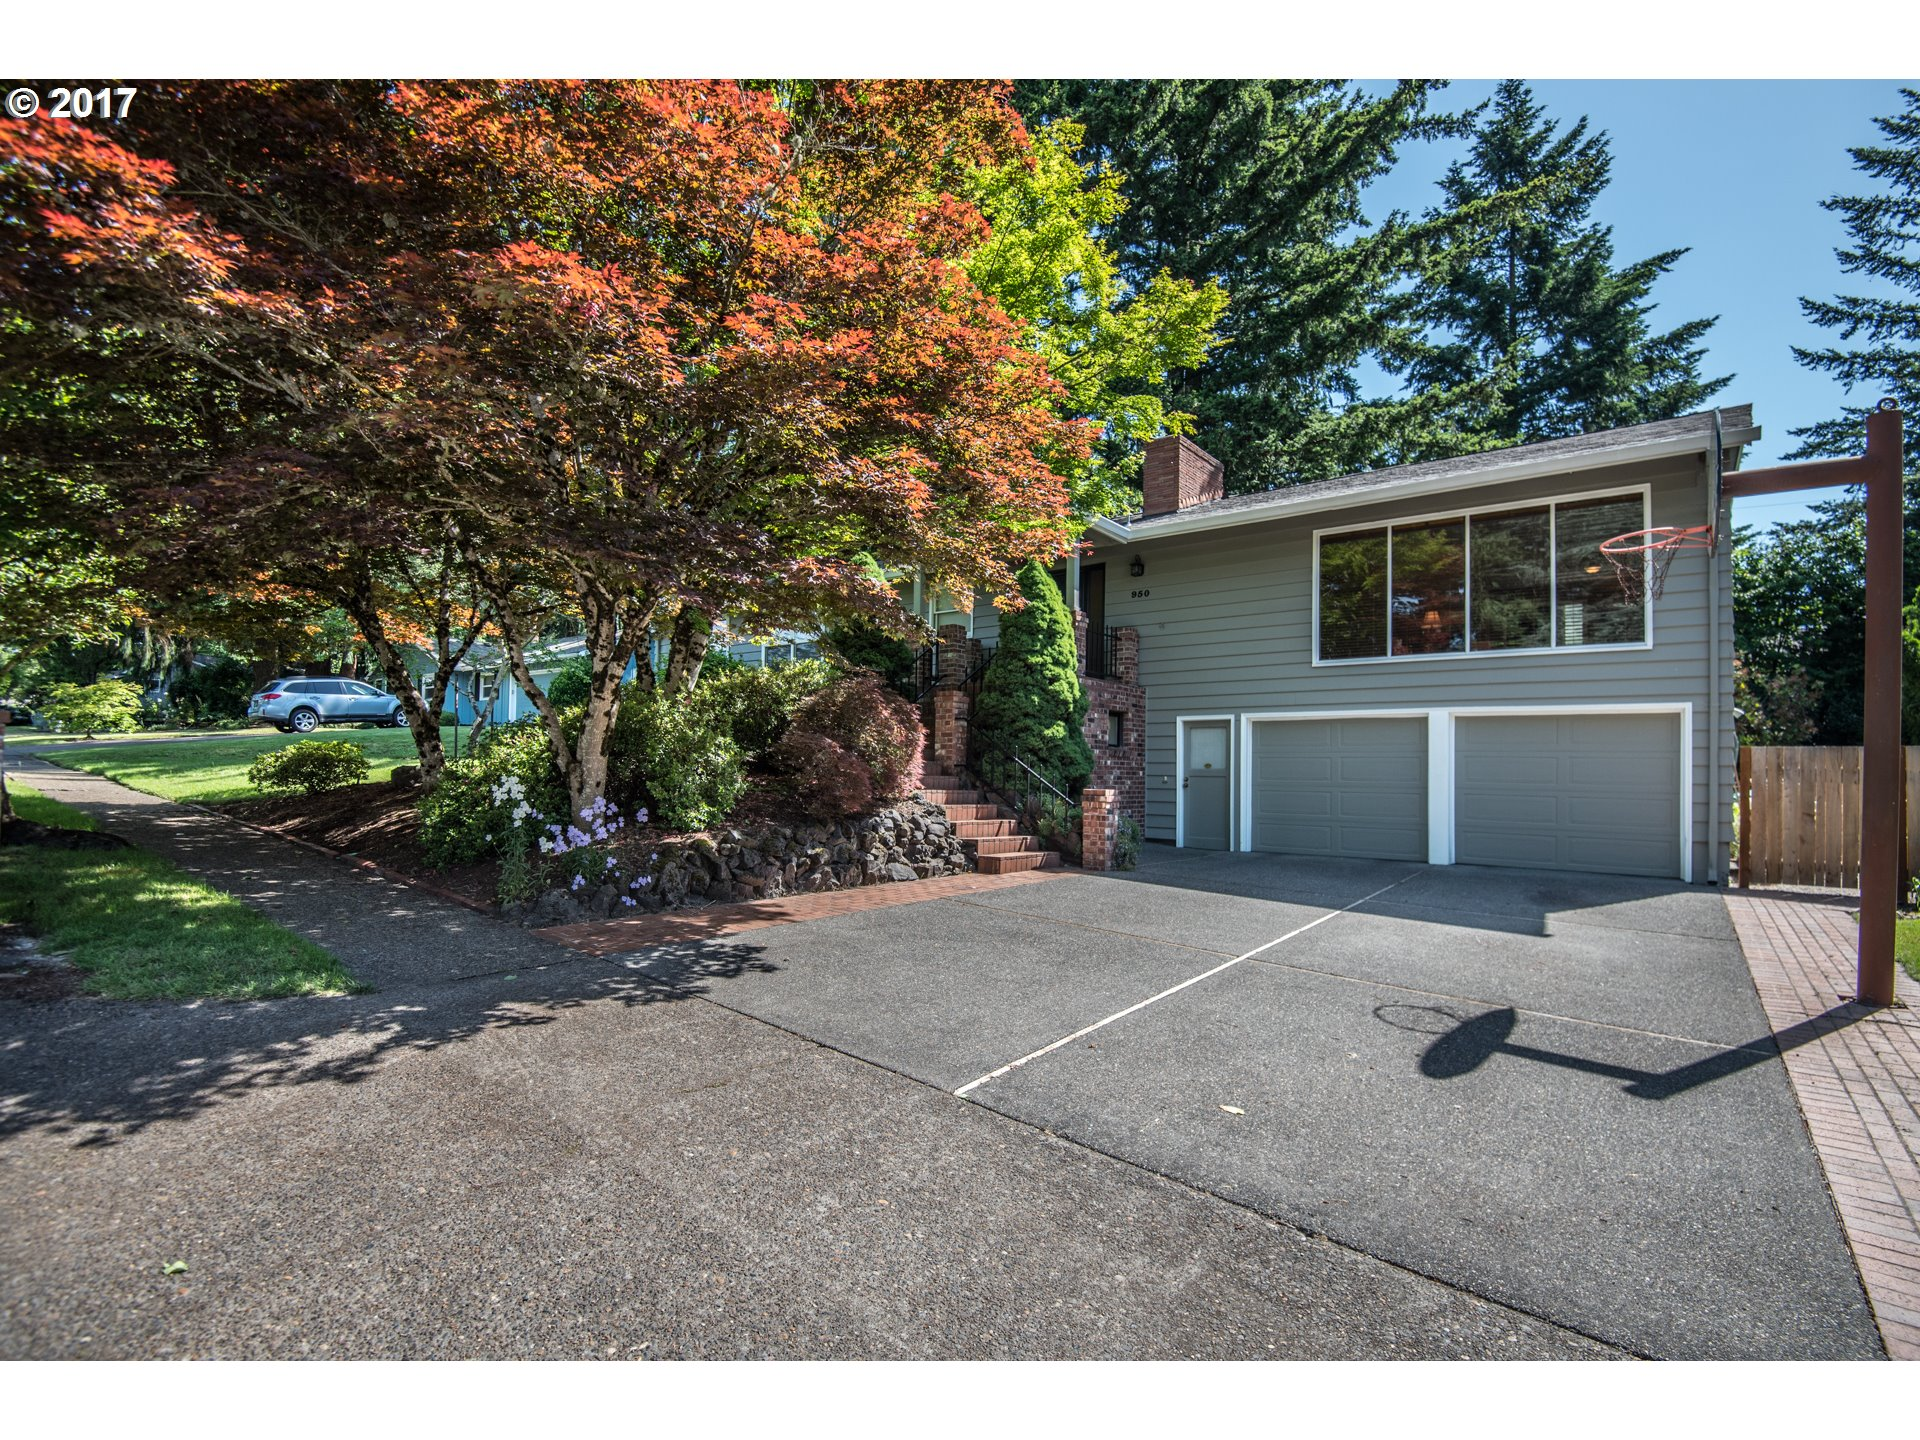 2456 sq. ft 3 bedrooms 3 bathrooms  House For Sale, Portland, OR